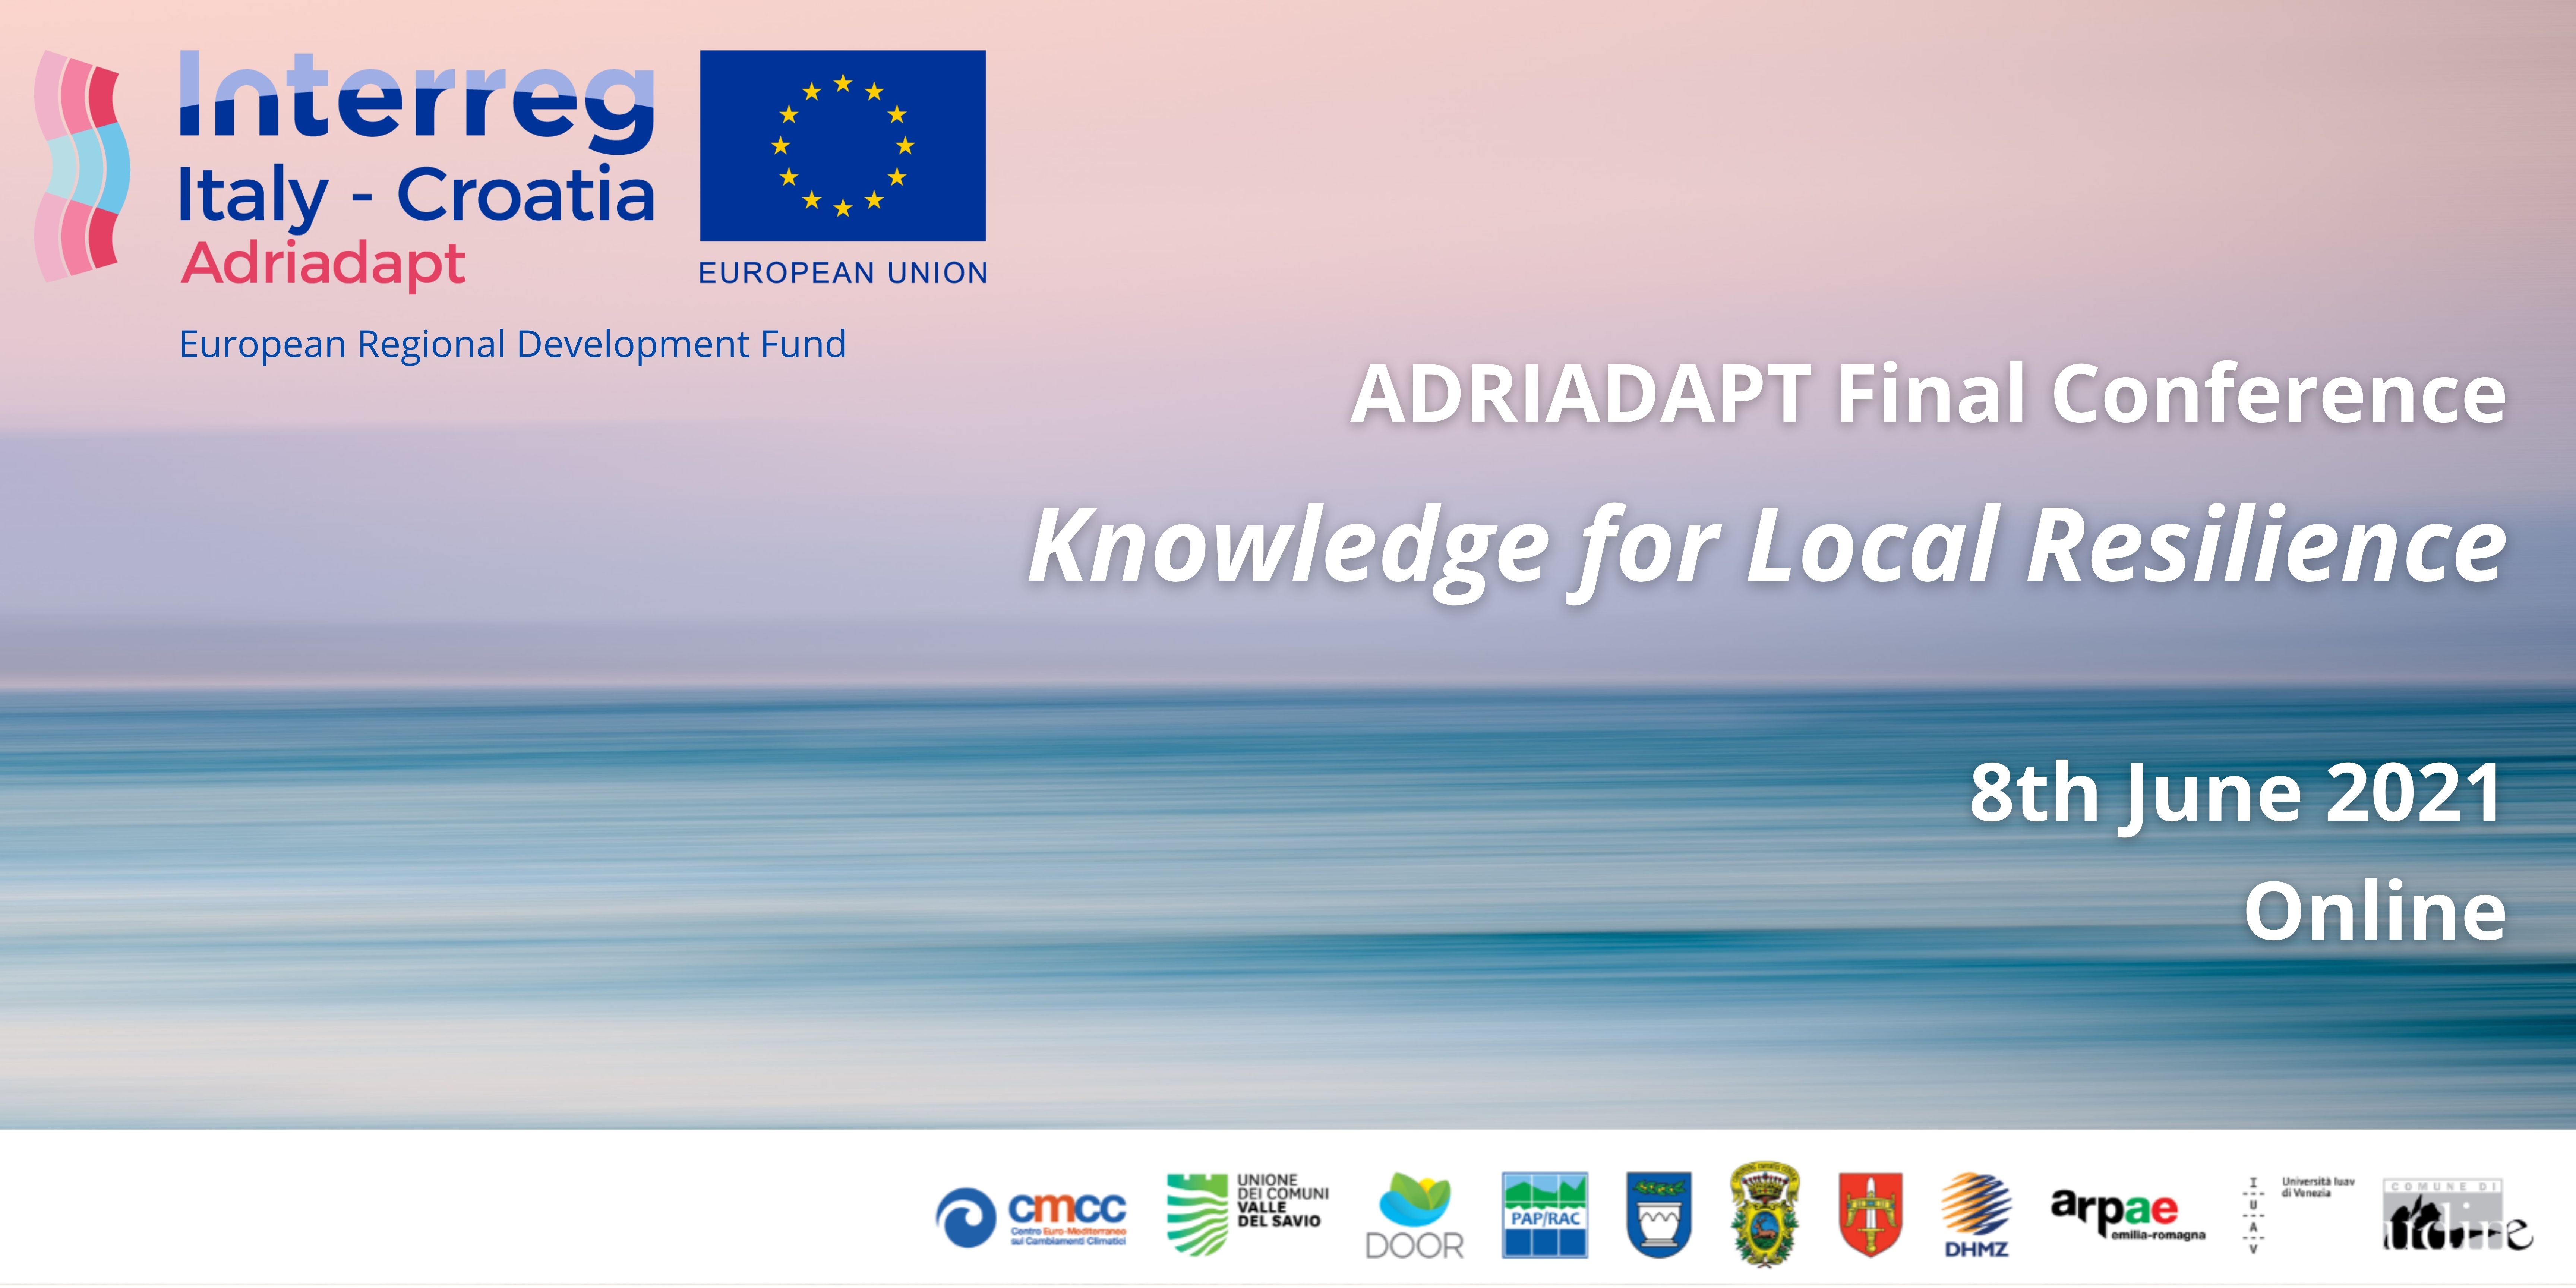 Adriadapt Final Conference